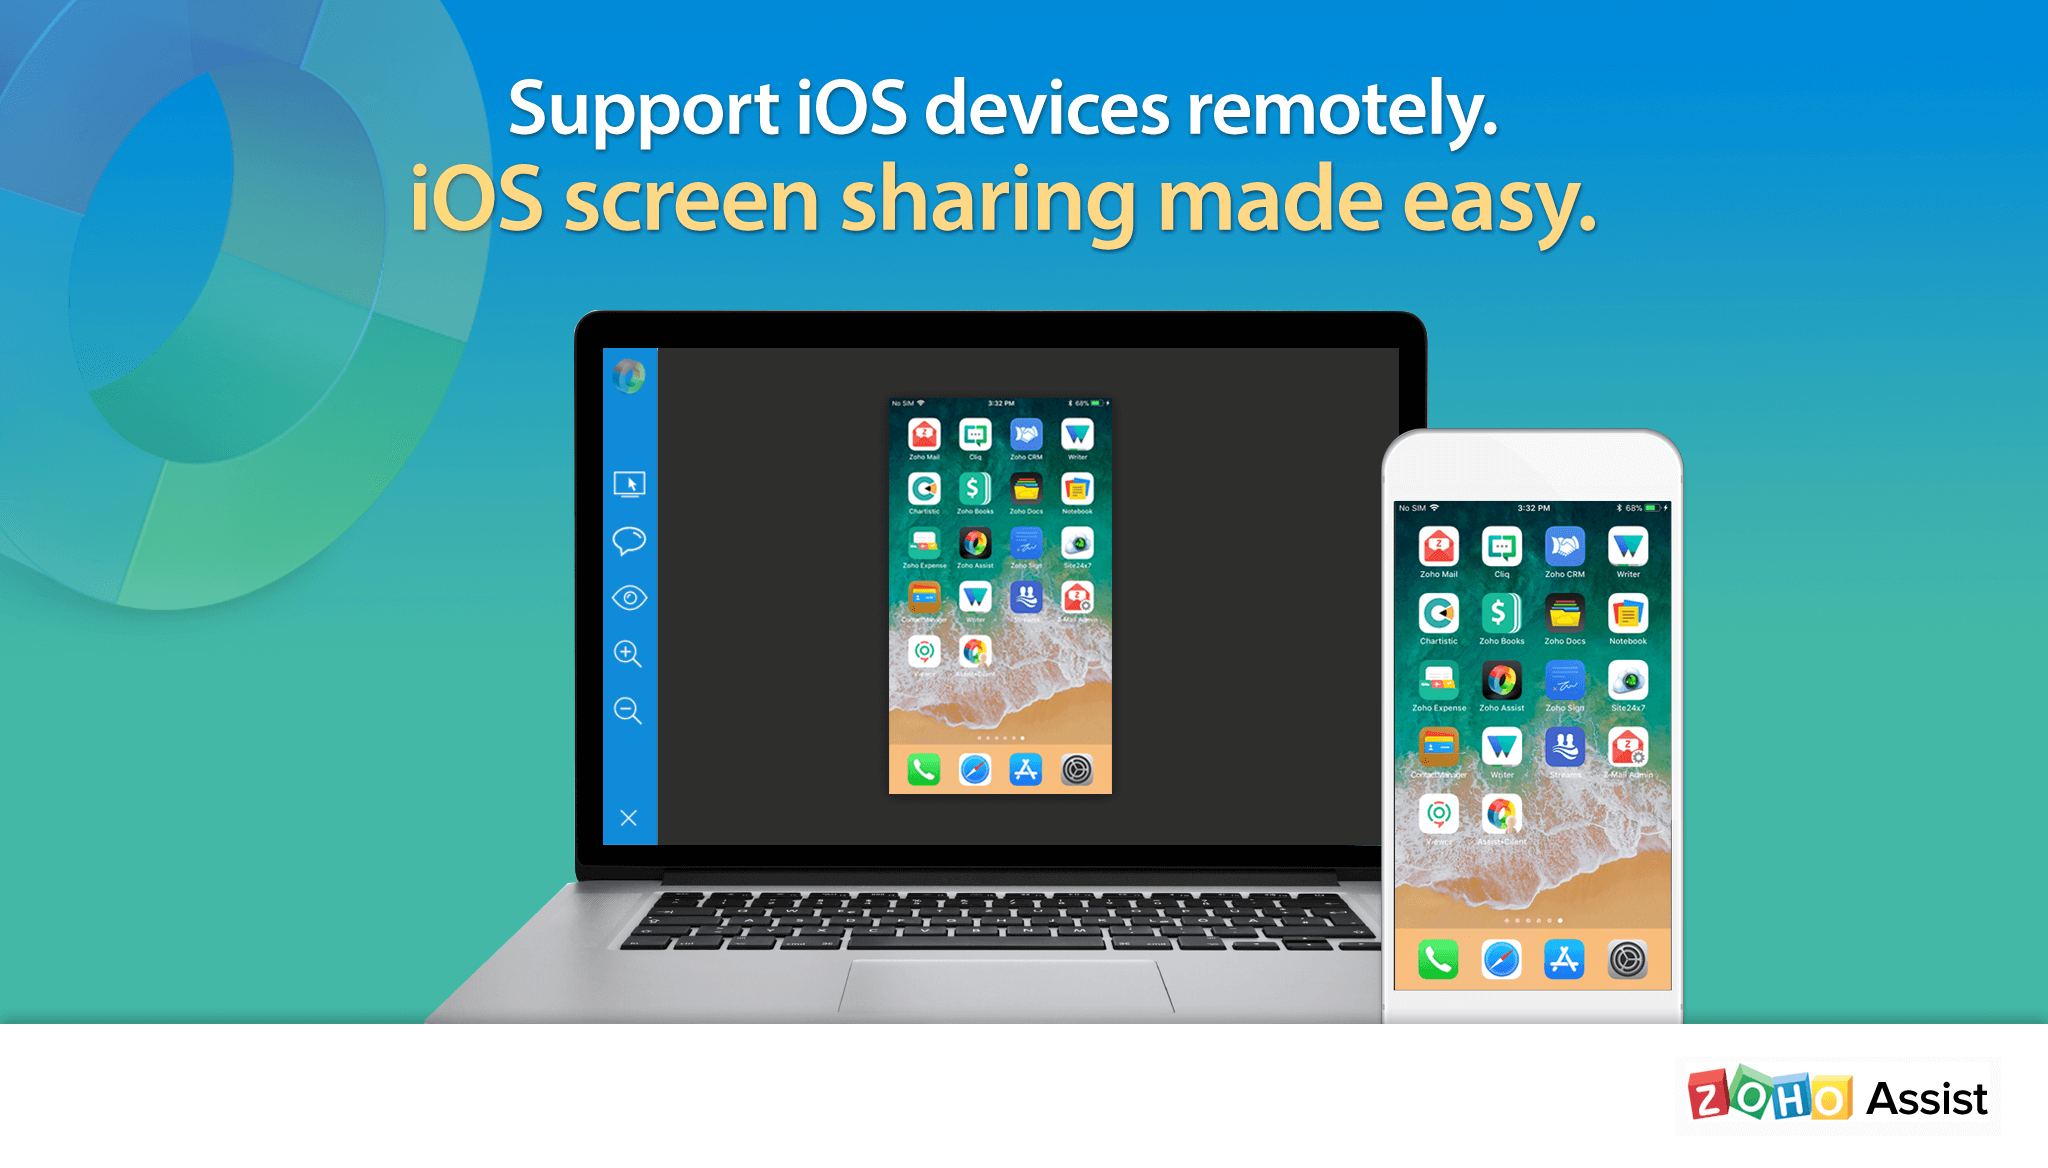 Zoho Assist: Remote Support for iOS Devices Made Easy